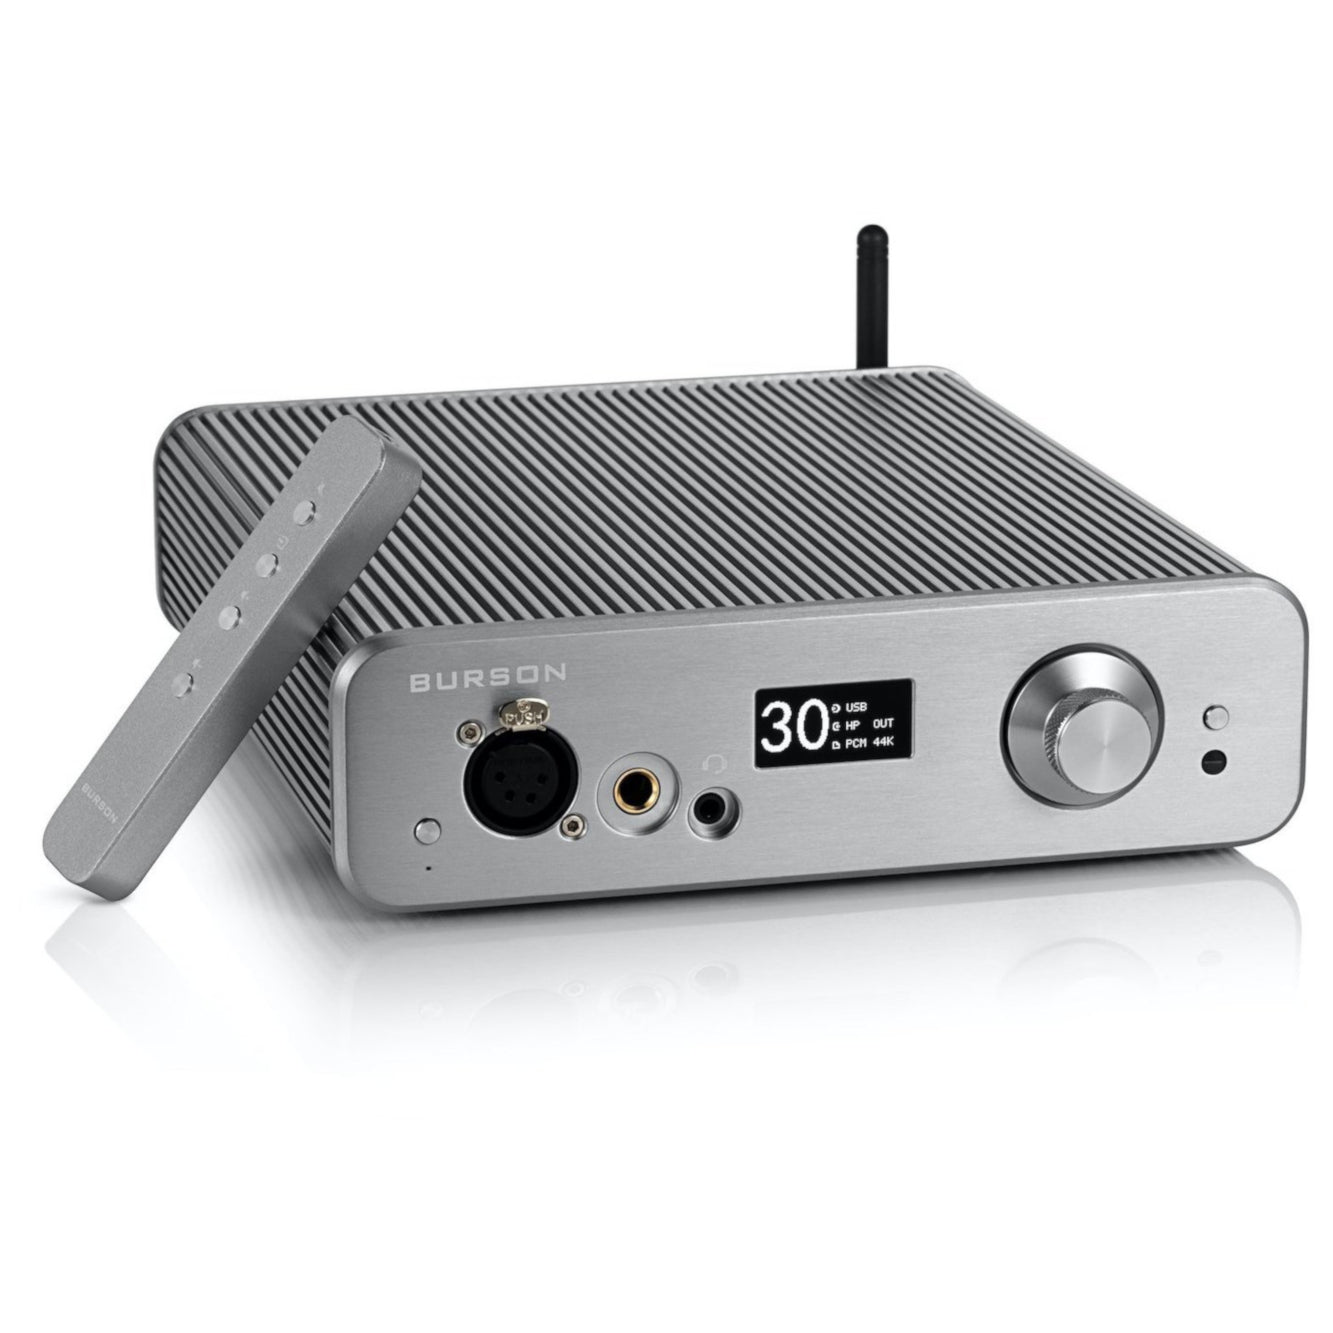 Burson Audio Conductor 3X Performance Balanced Headphone Amp, Pre-amp & USB DAC